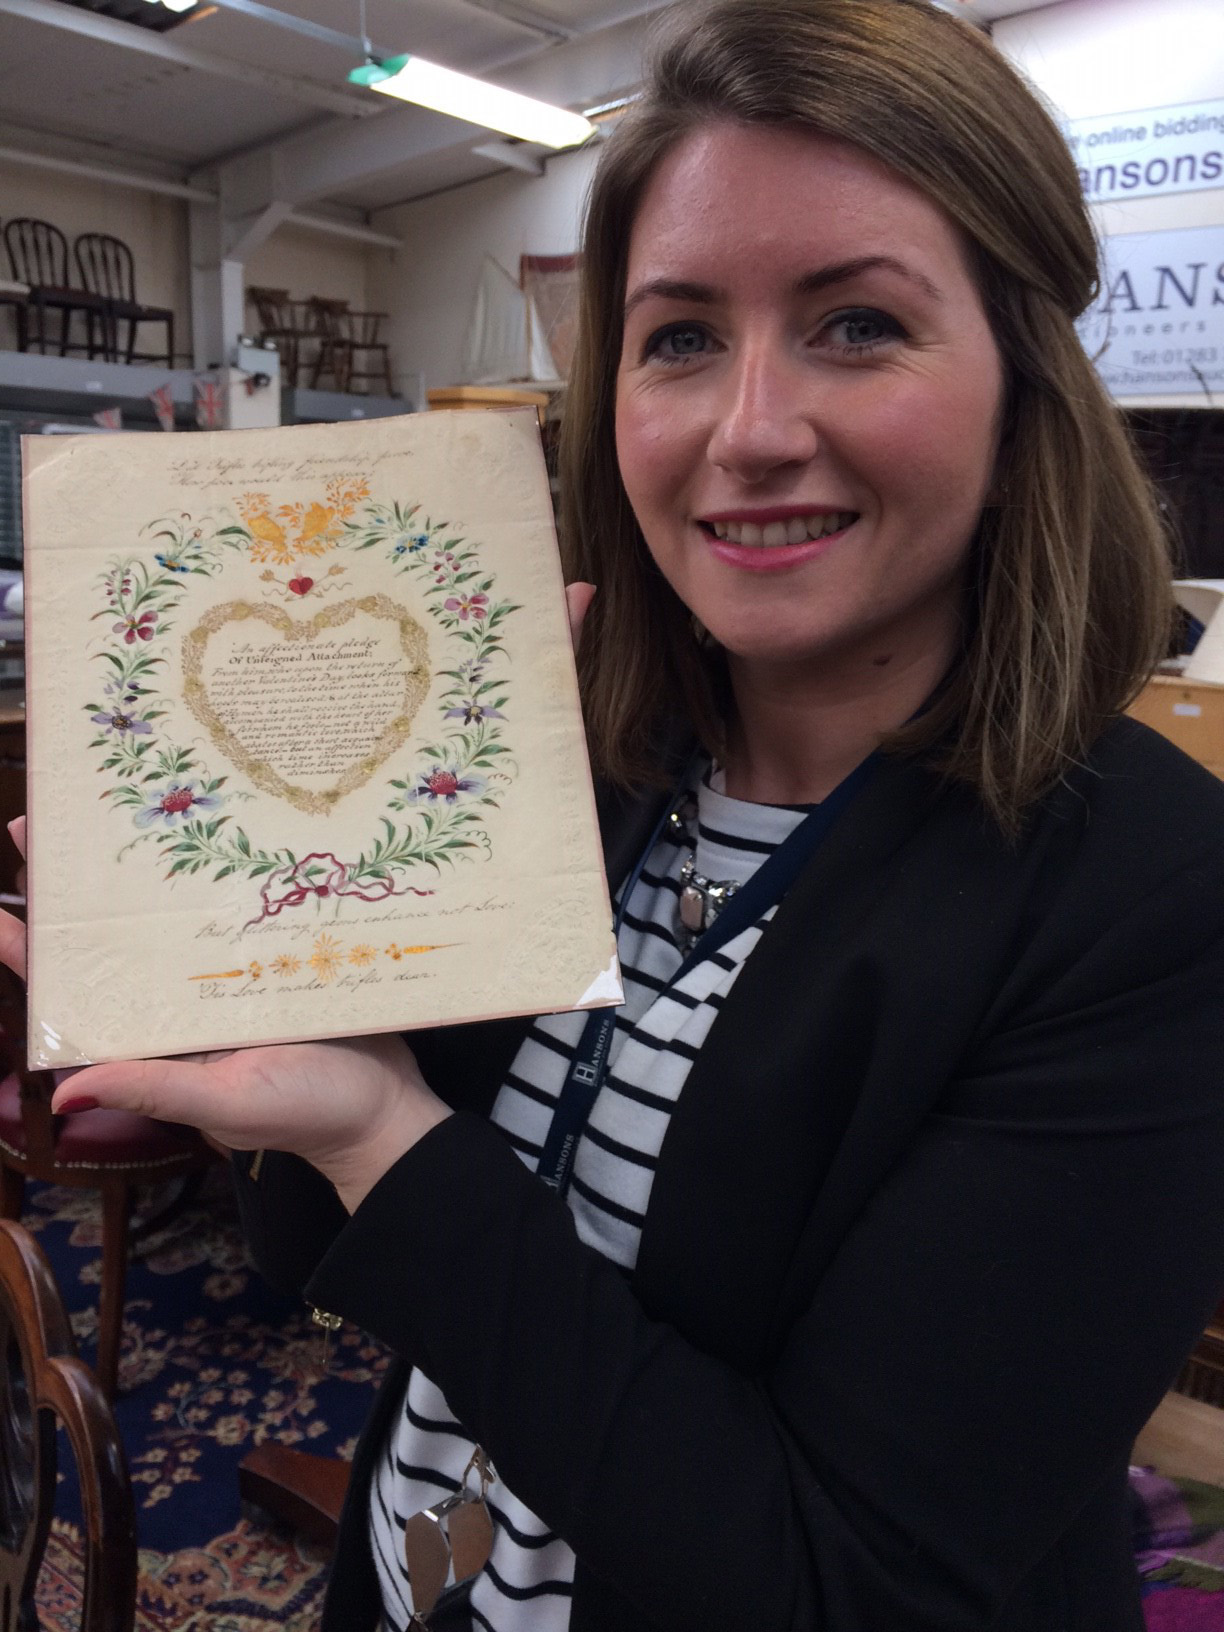 Above: Hansons' valuer Isabel Murtough holds the Valentine that comes up for auction this Friday (14 February).